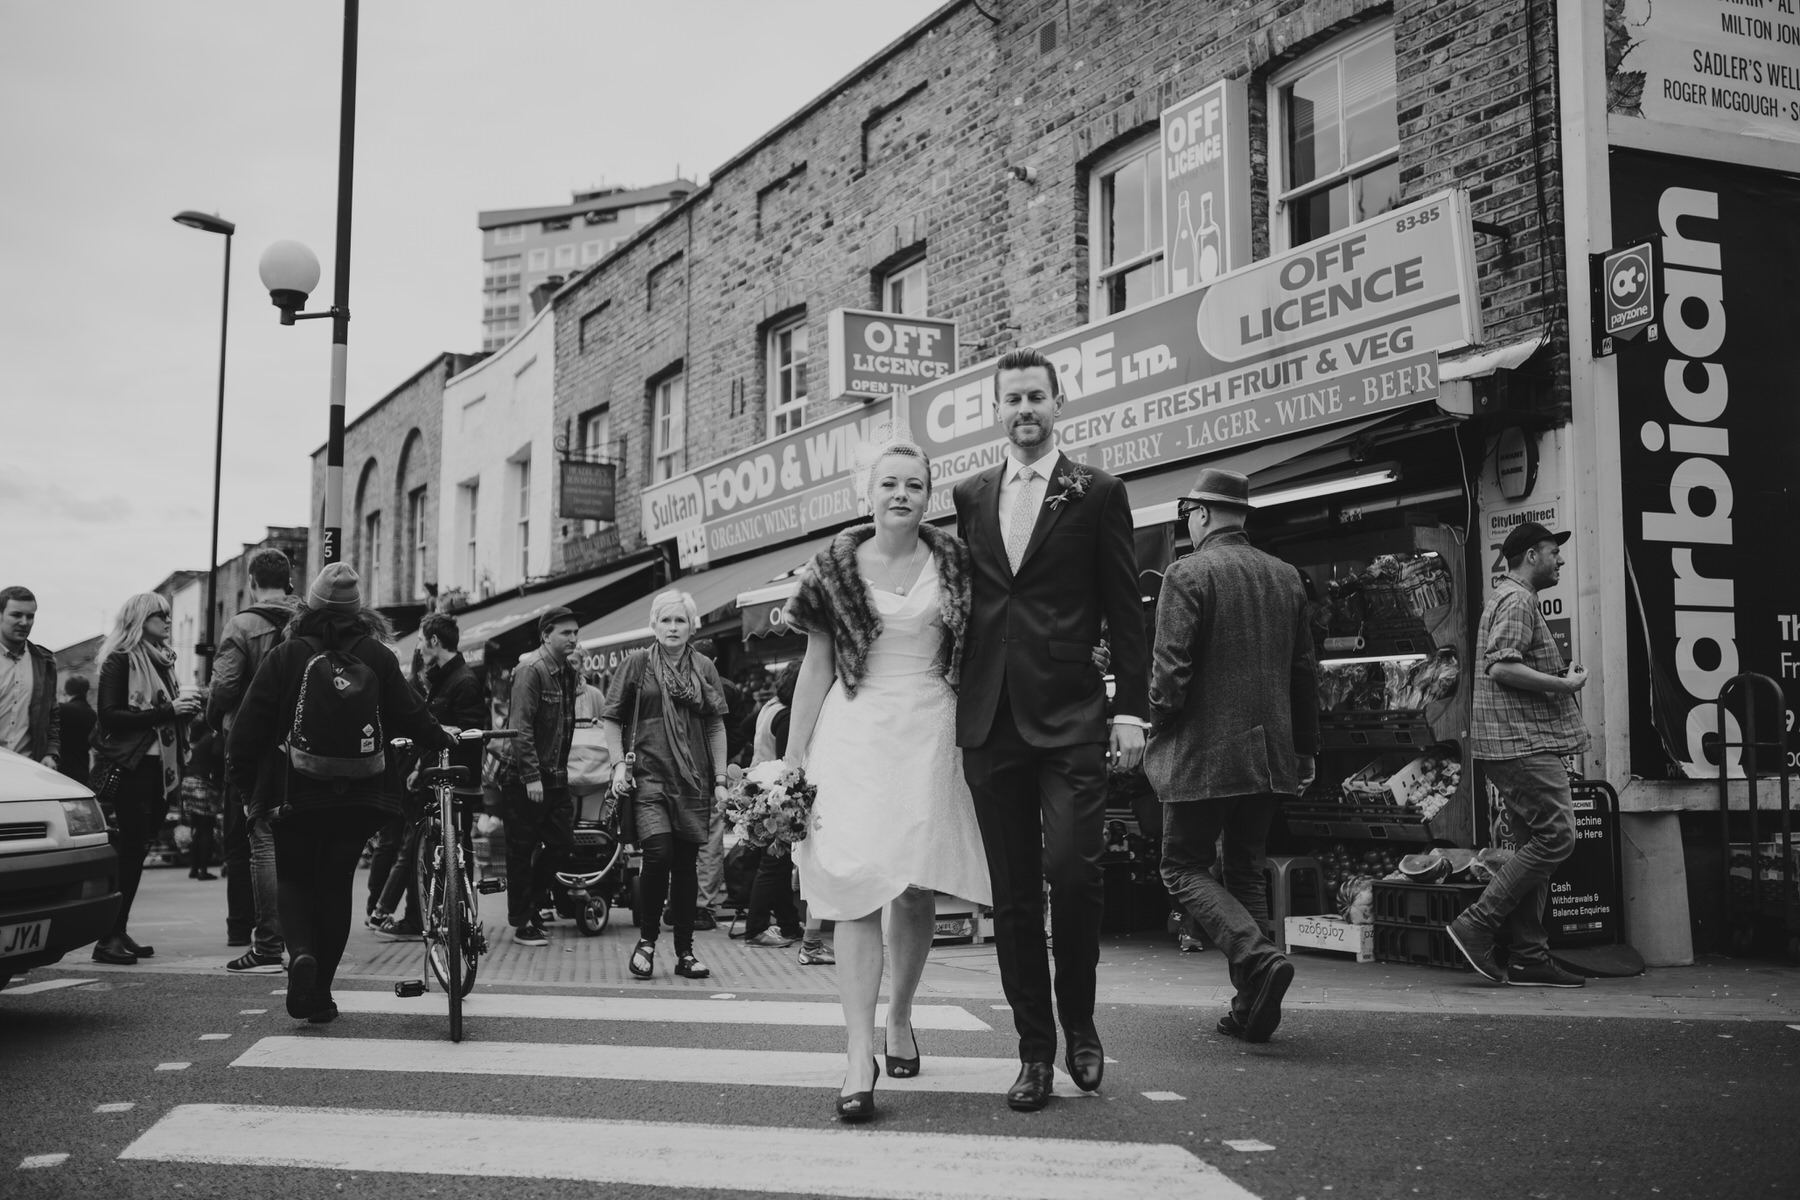 MS-Londesborough-Pub-wedding-Hackney-alternative-photographer-37-wedding-portraits-Broadway-market-quirky-couple-crossing-road.jpg